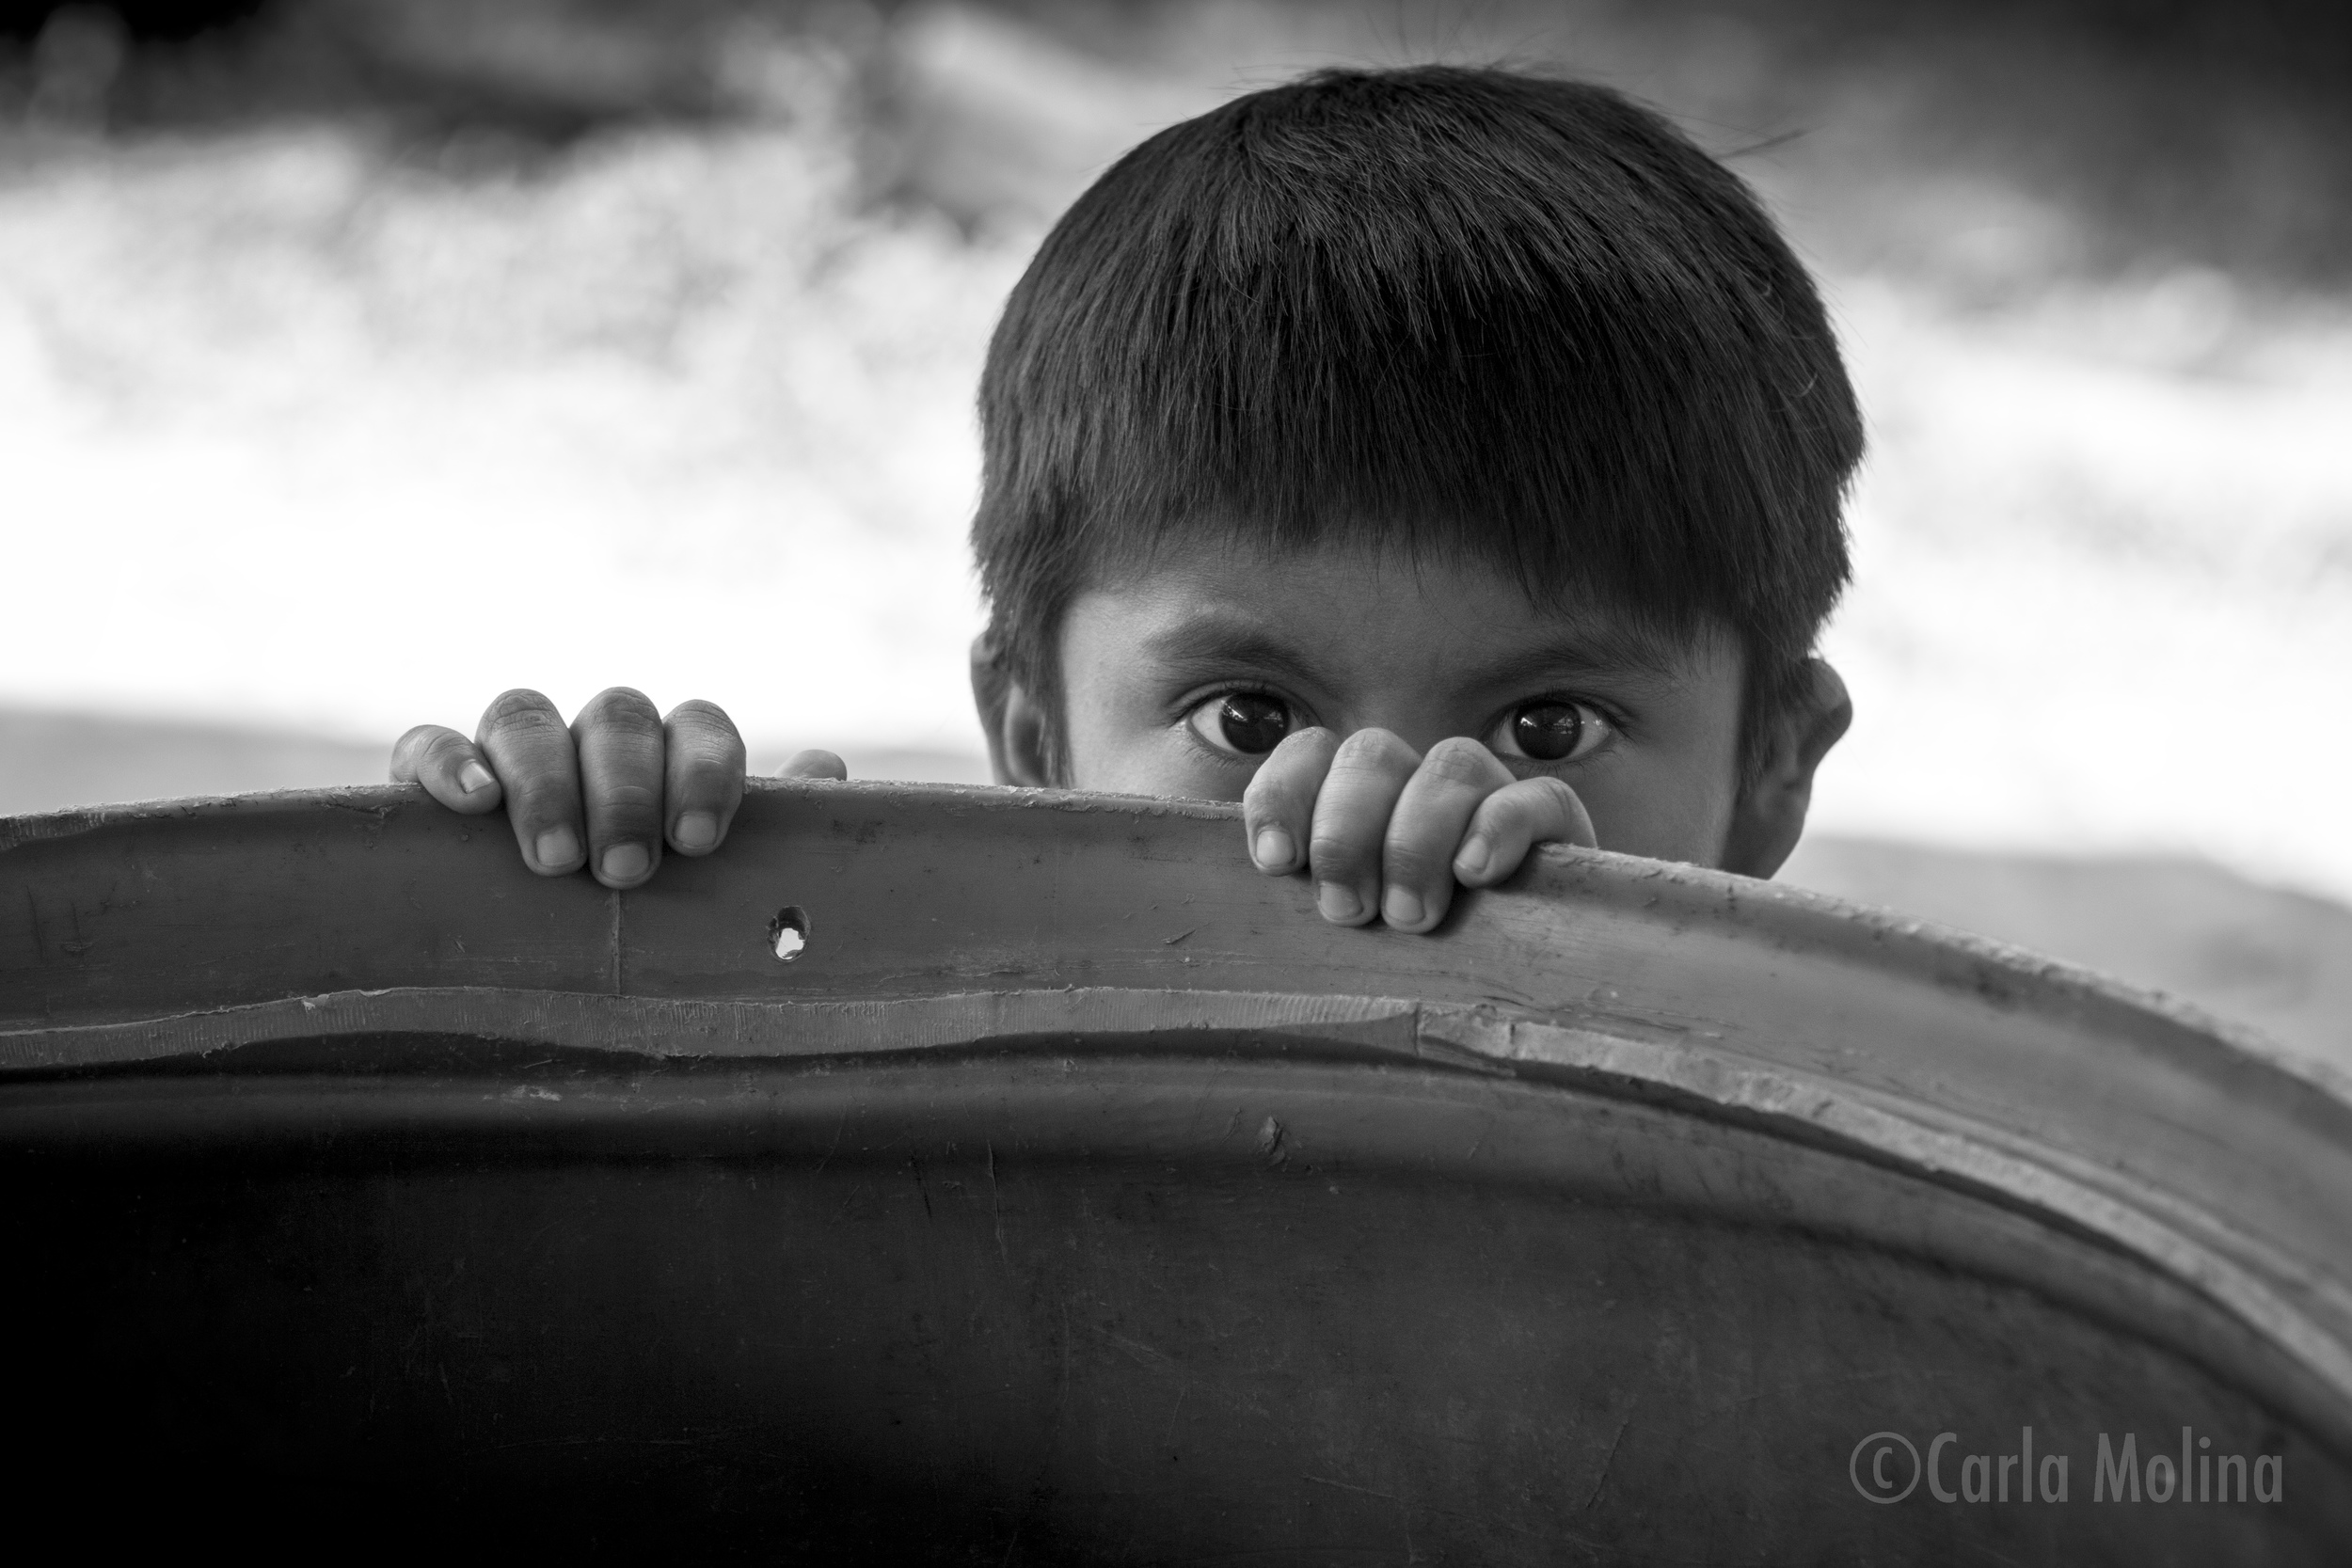 8. Boy Peeking-9780_web.jpg